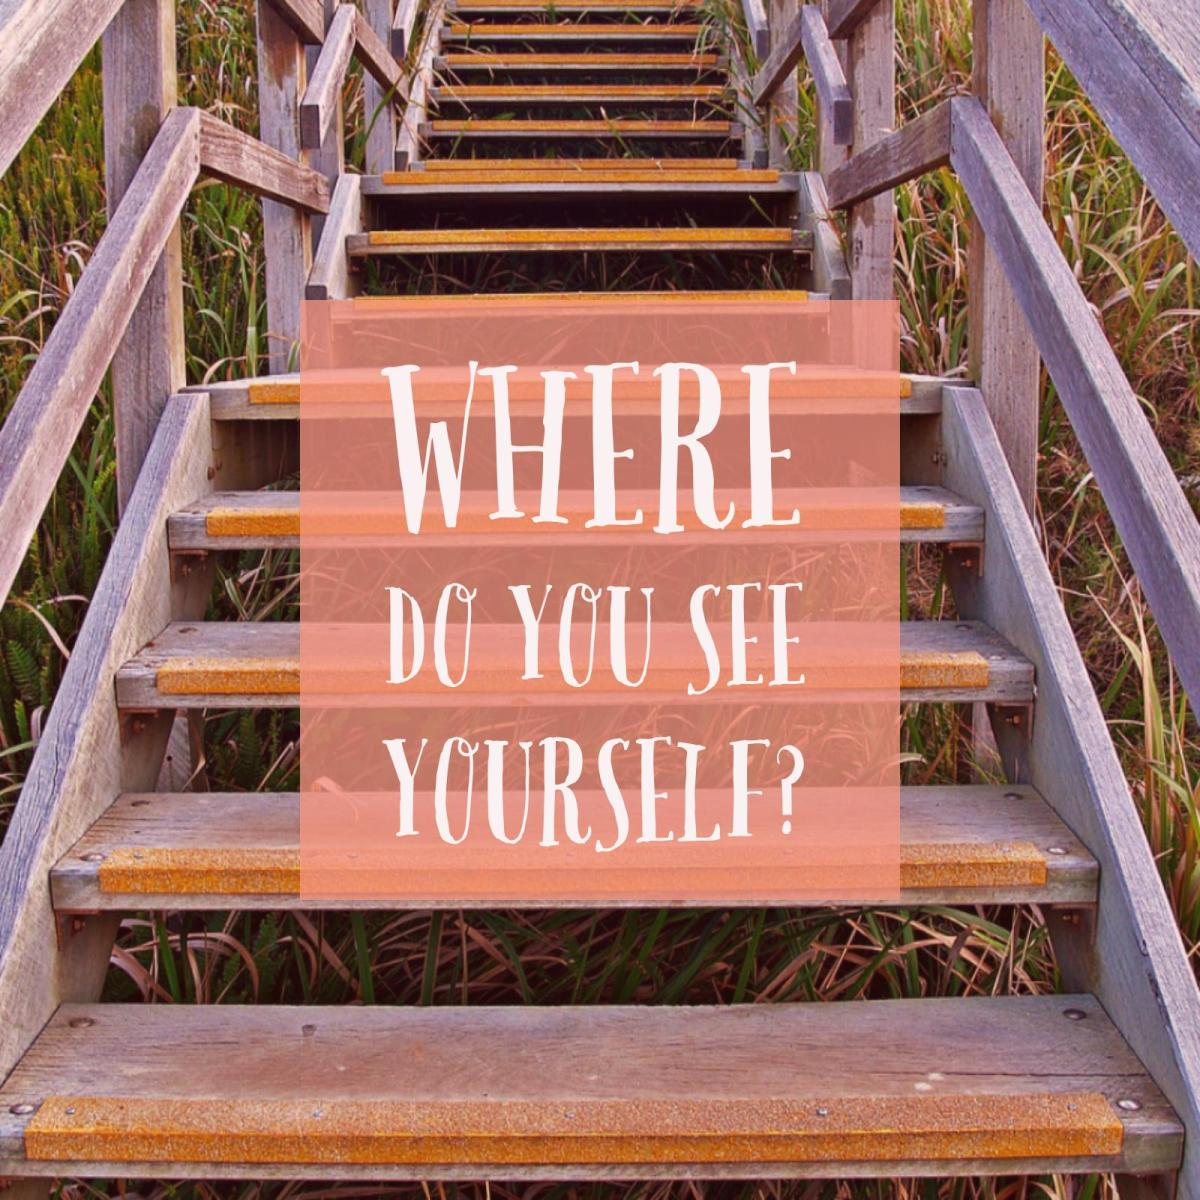 Where do you see yourself?